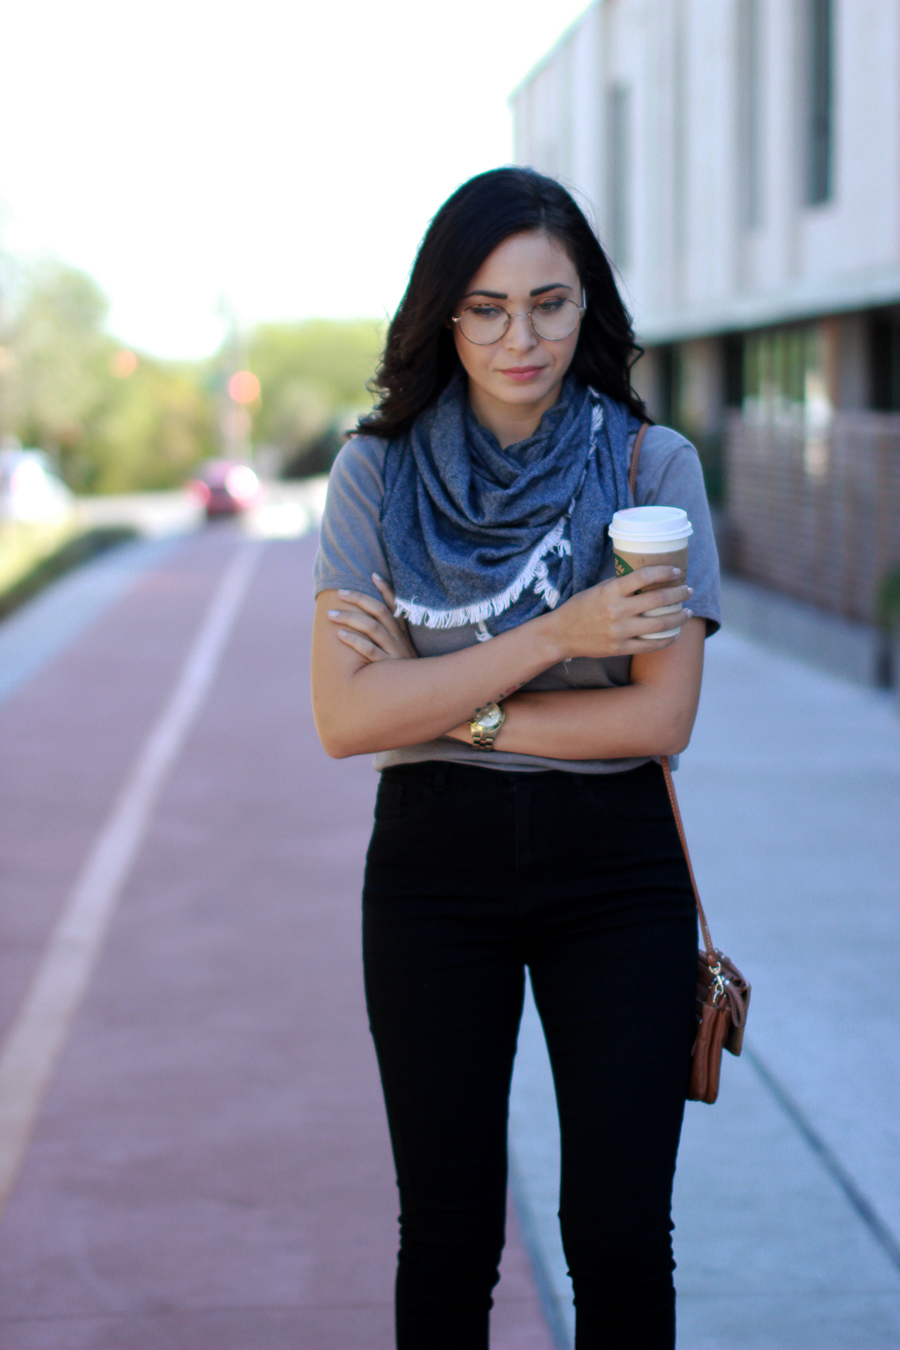 FIXIN-TO-THRILL-BANANA-REPUBLIC-TEE-CREW-NECK-CASUAL-TREND-FALL-OCTOBER-ATX-AUSTIN-STYLE-BLOG-FW15-TRENDY-CHIC-GLAM-TEXAS